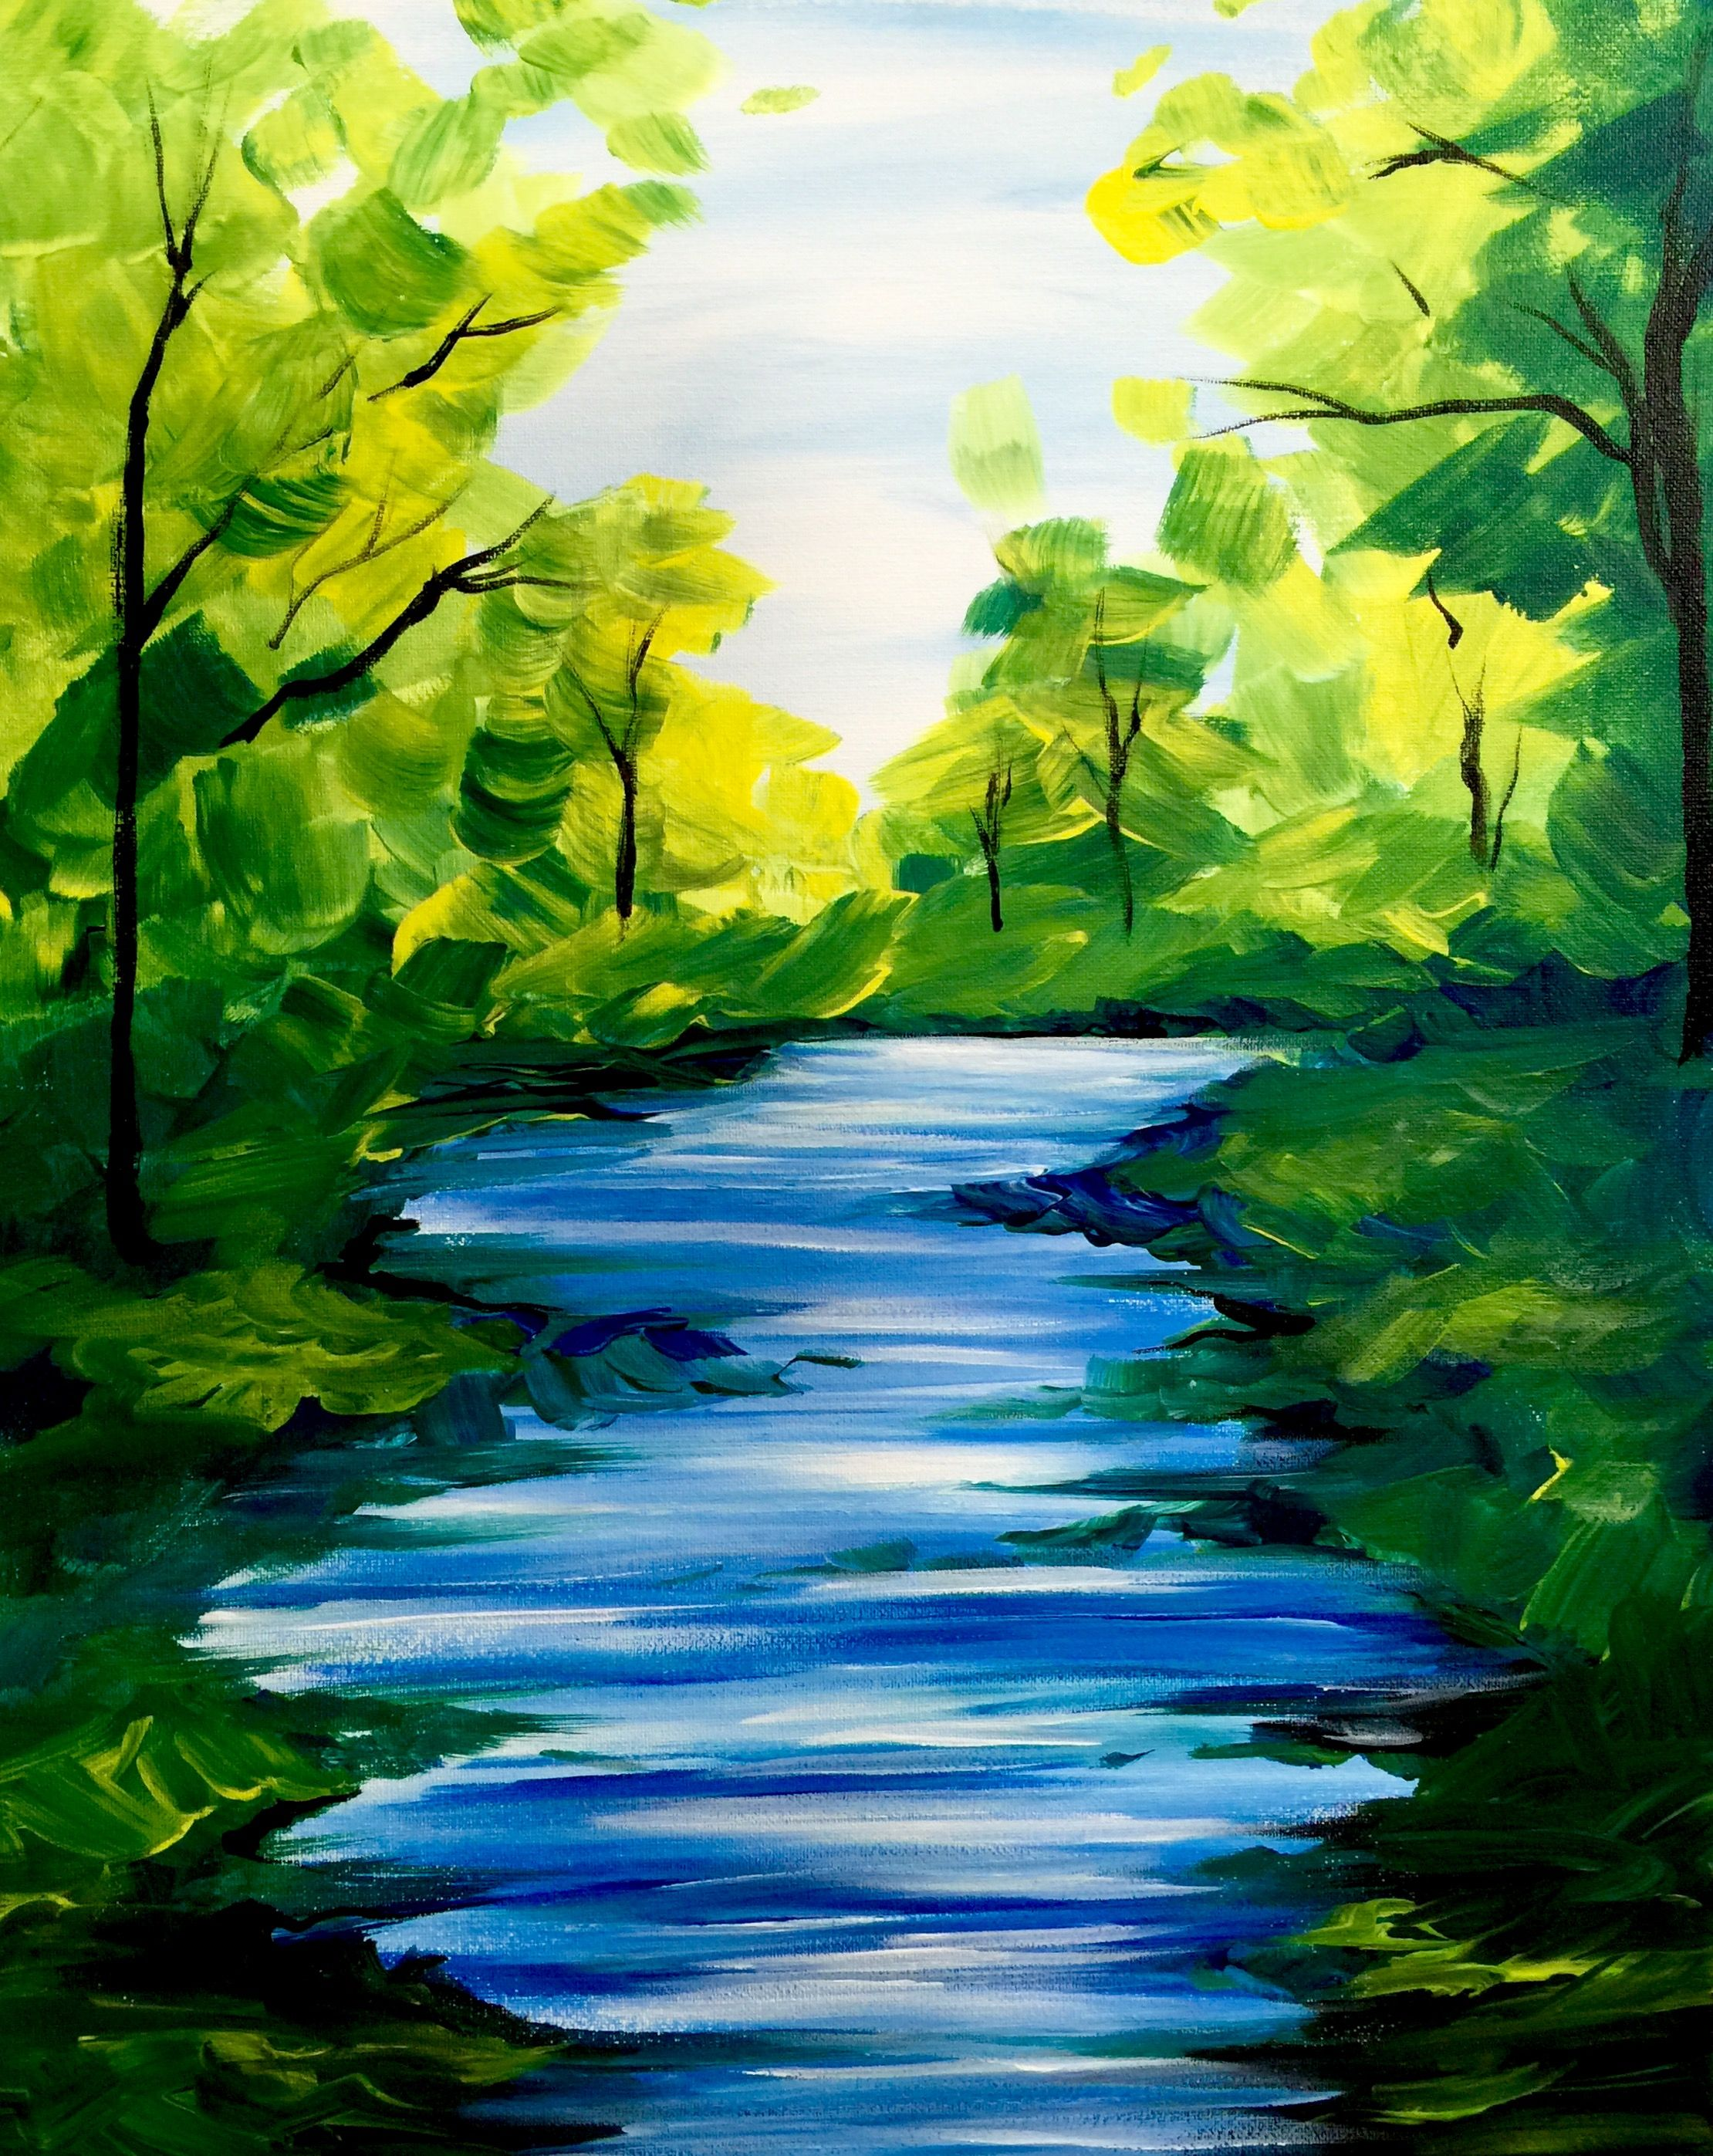 Easy Nature Painting Ideas : nature, painting, ideas, Summer, Stream, Pinata, Pittsburg, Paint, Events, Nature, Paintings, Acrylic,, Landscape, Paintings,